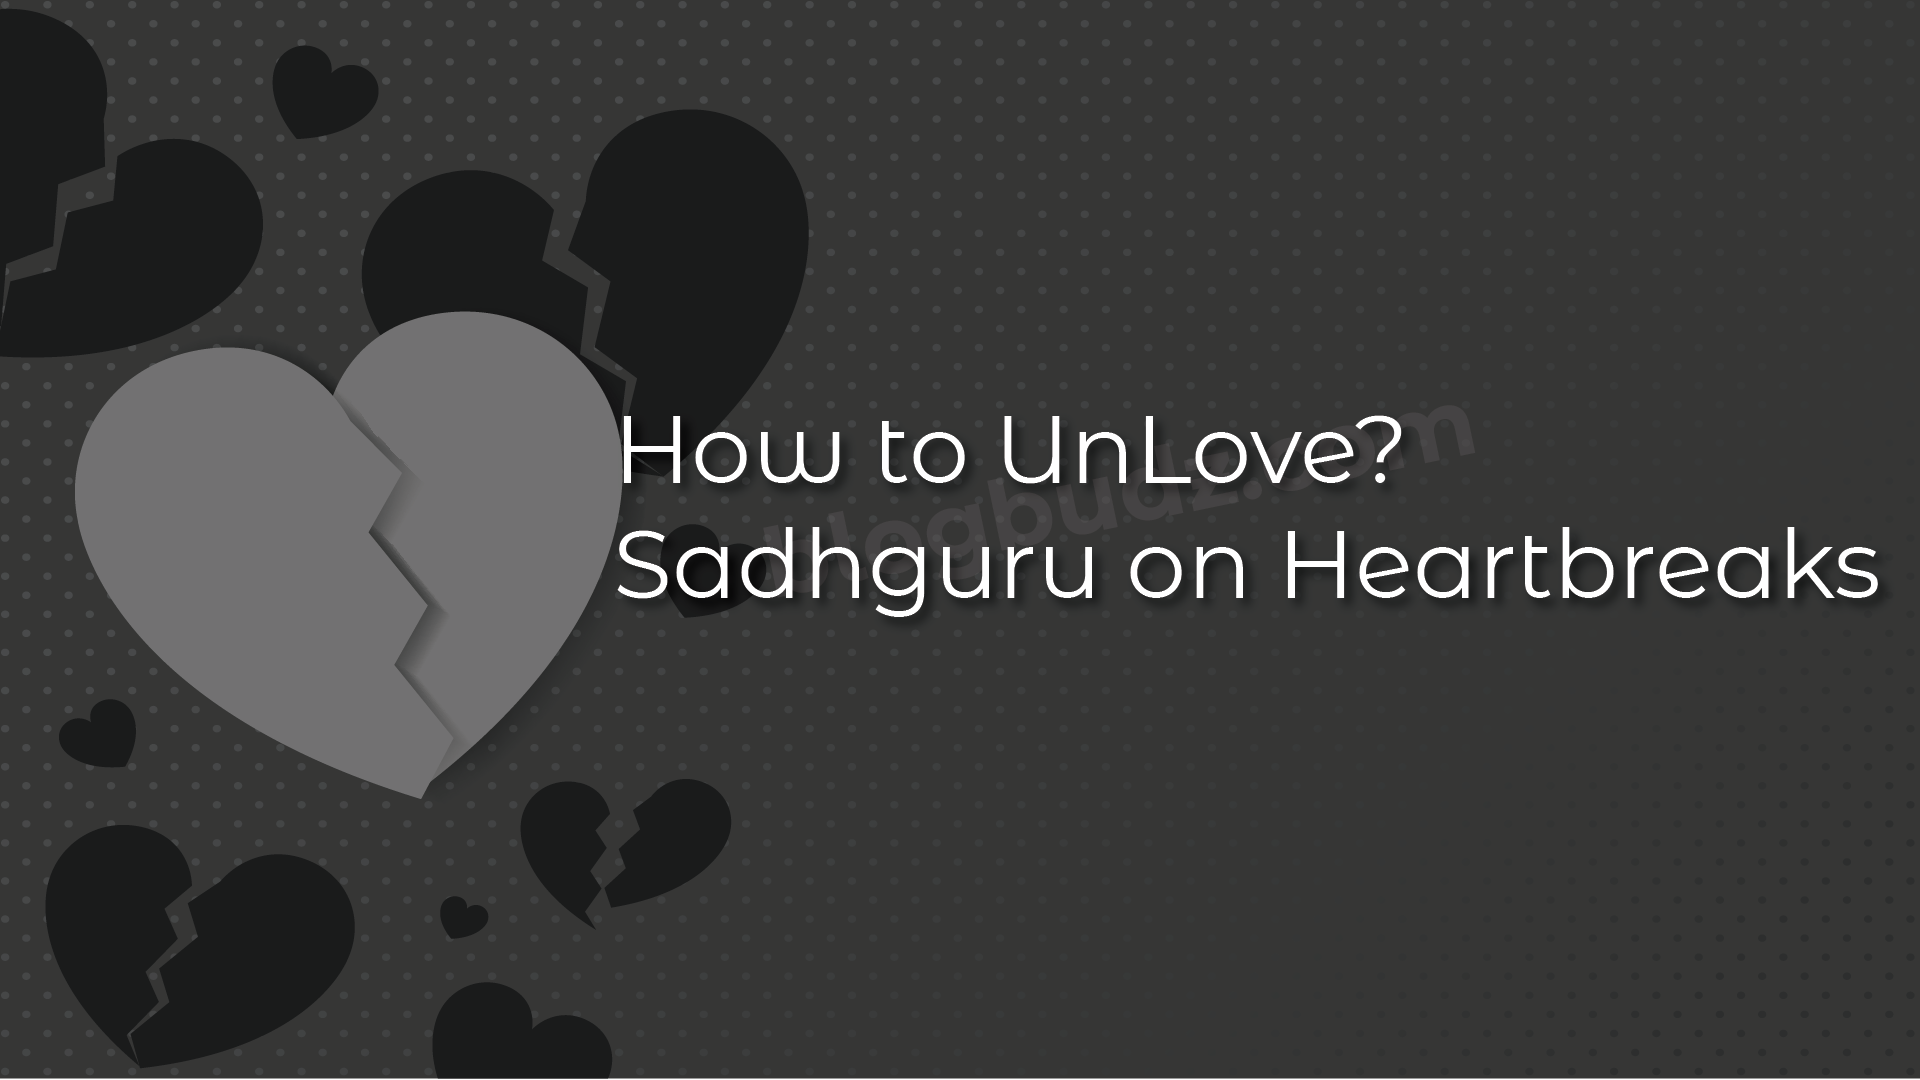 How to unlove